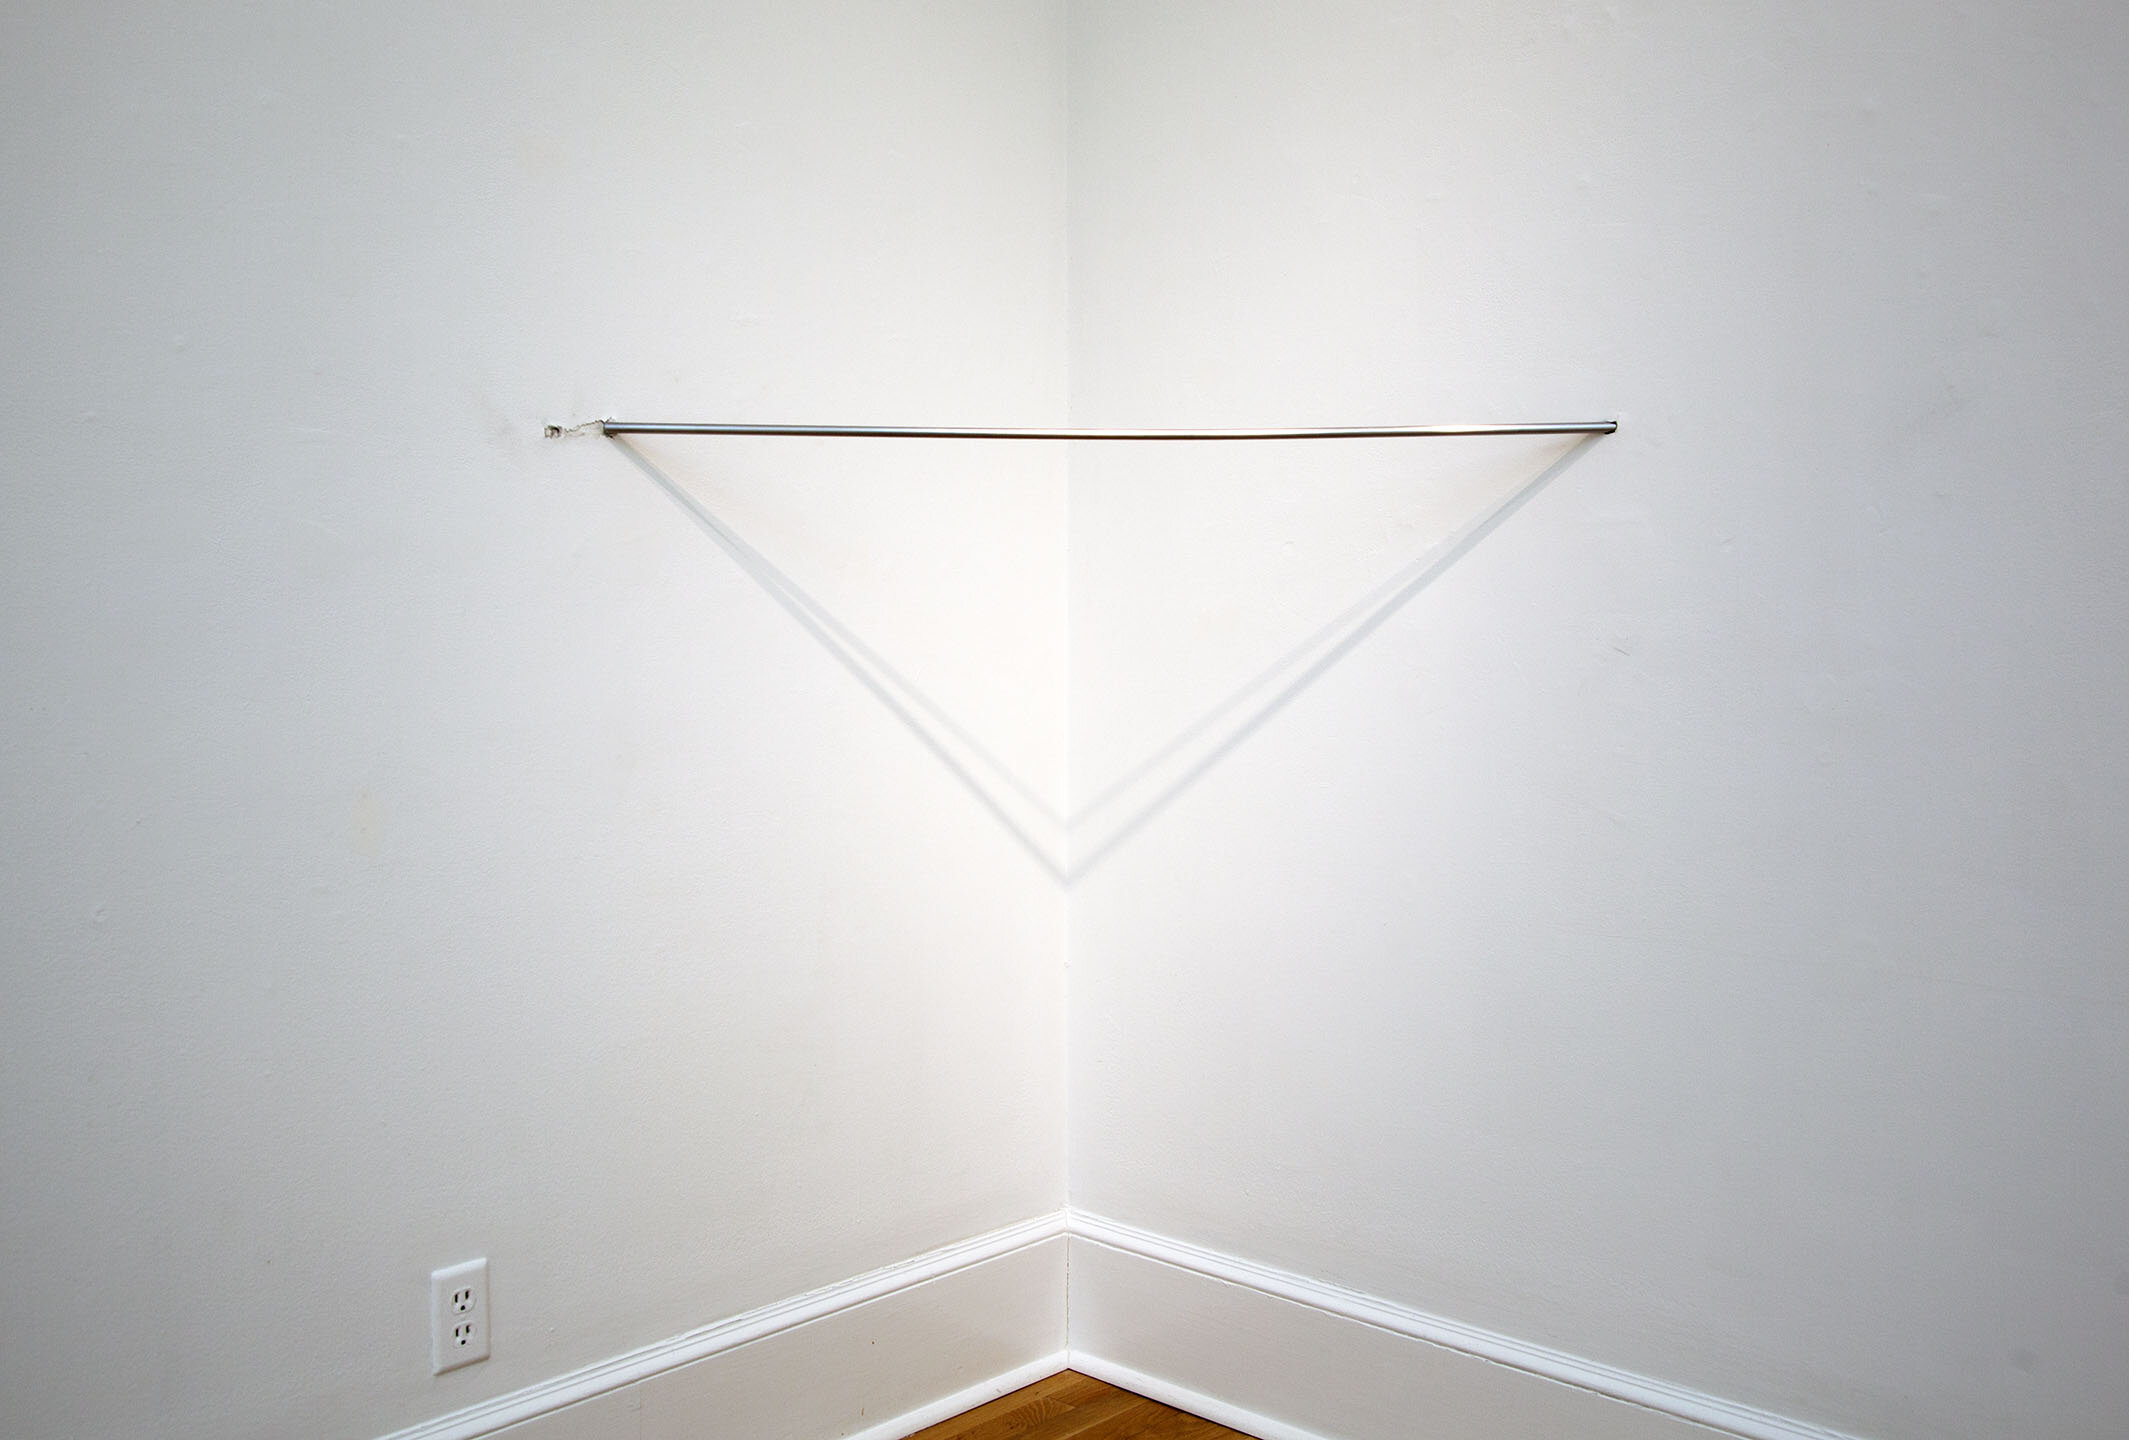 Corner Piss , 2019, steel, 48 x ½ x ½ inches.